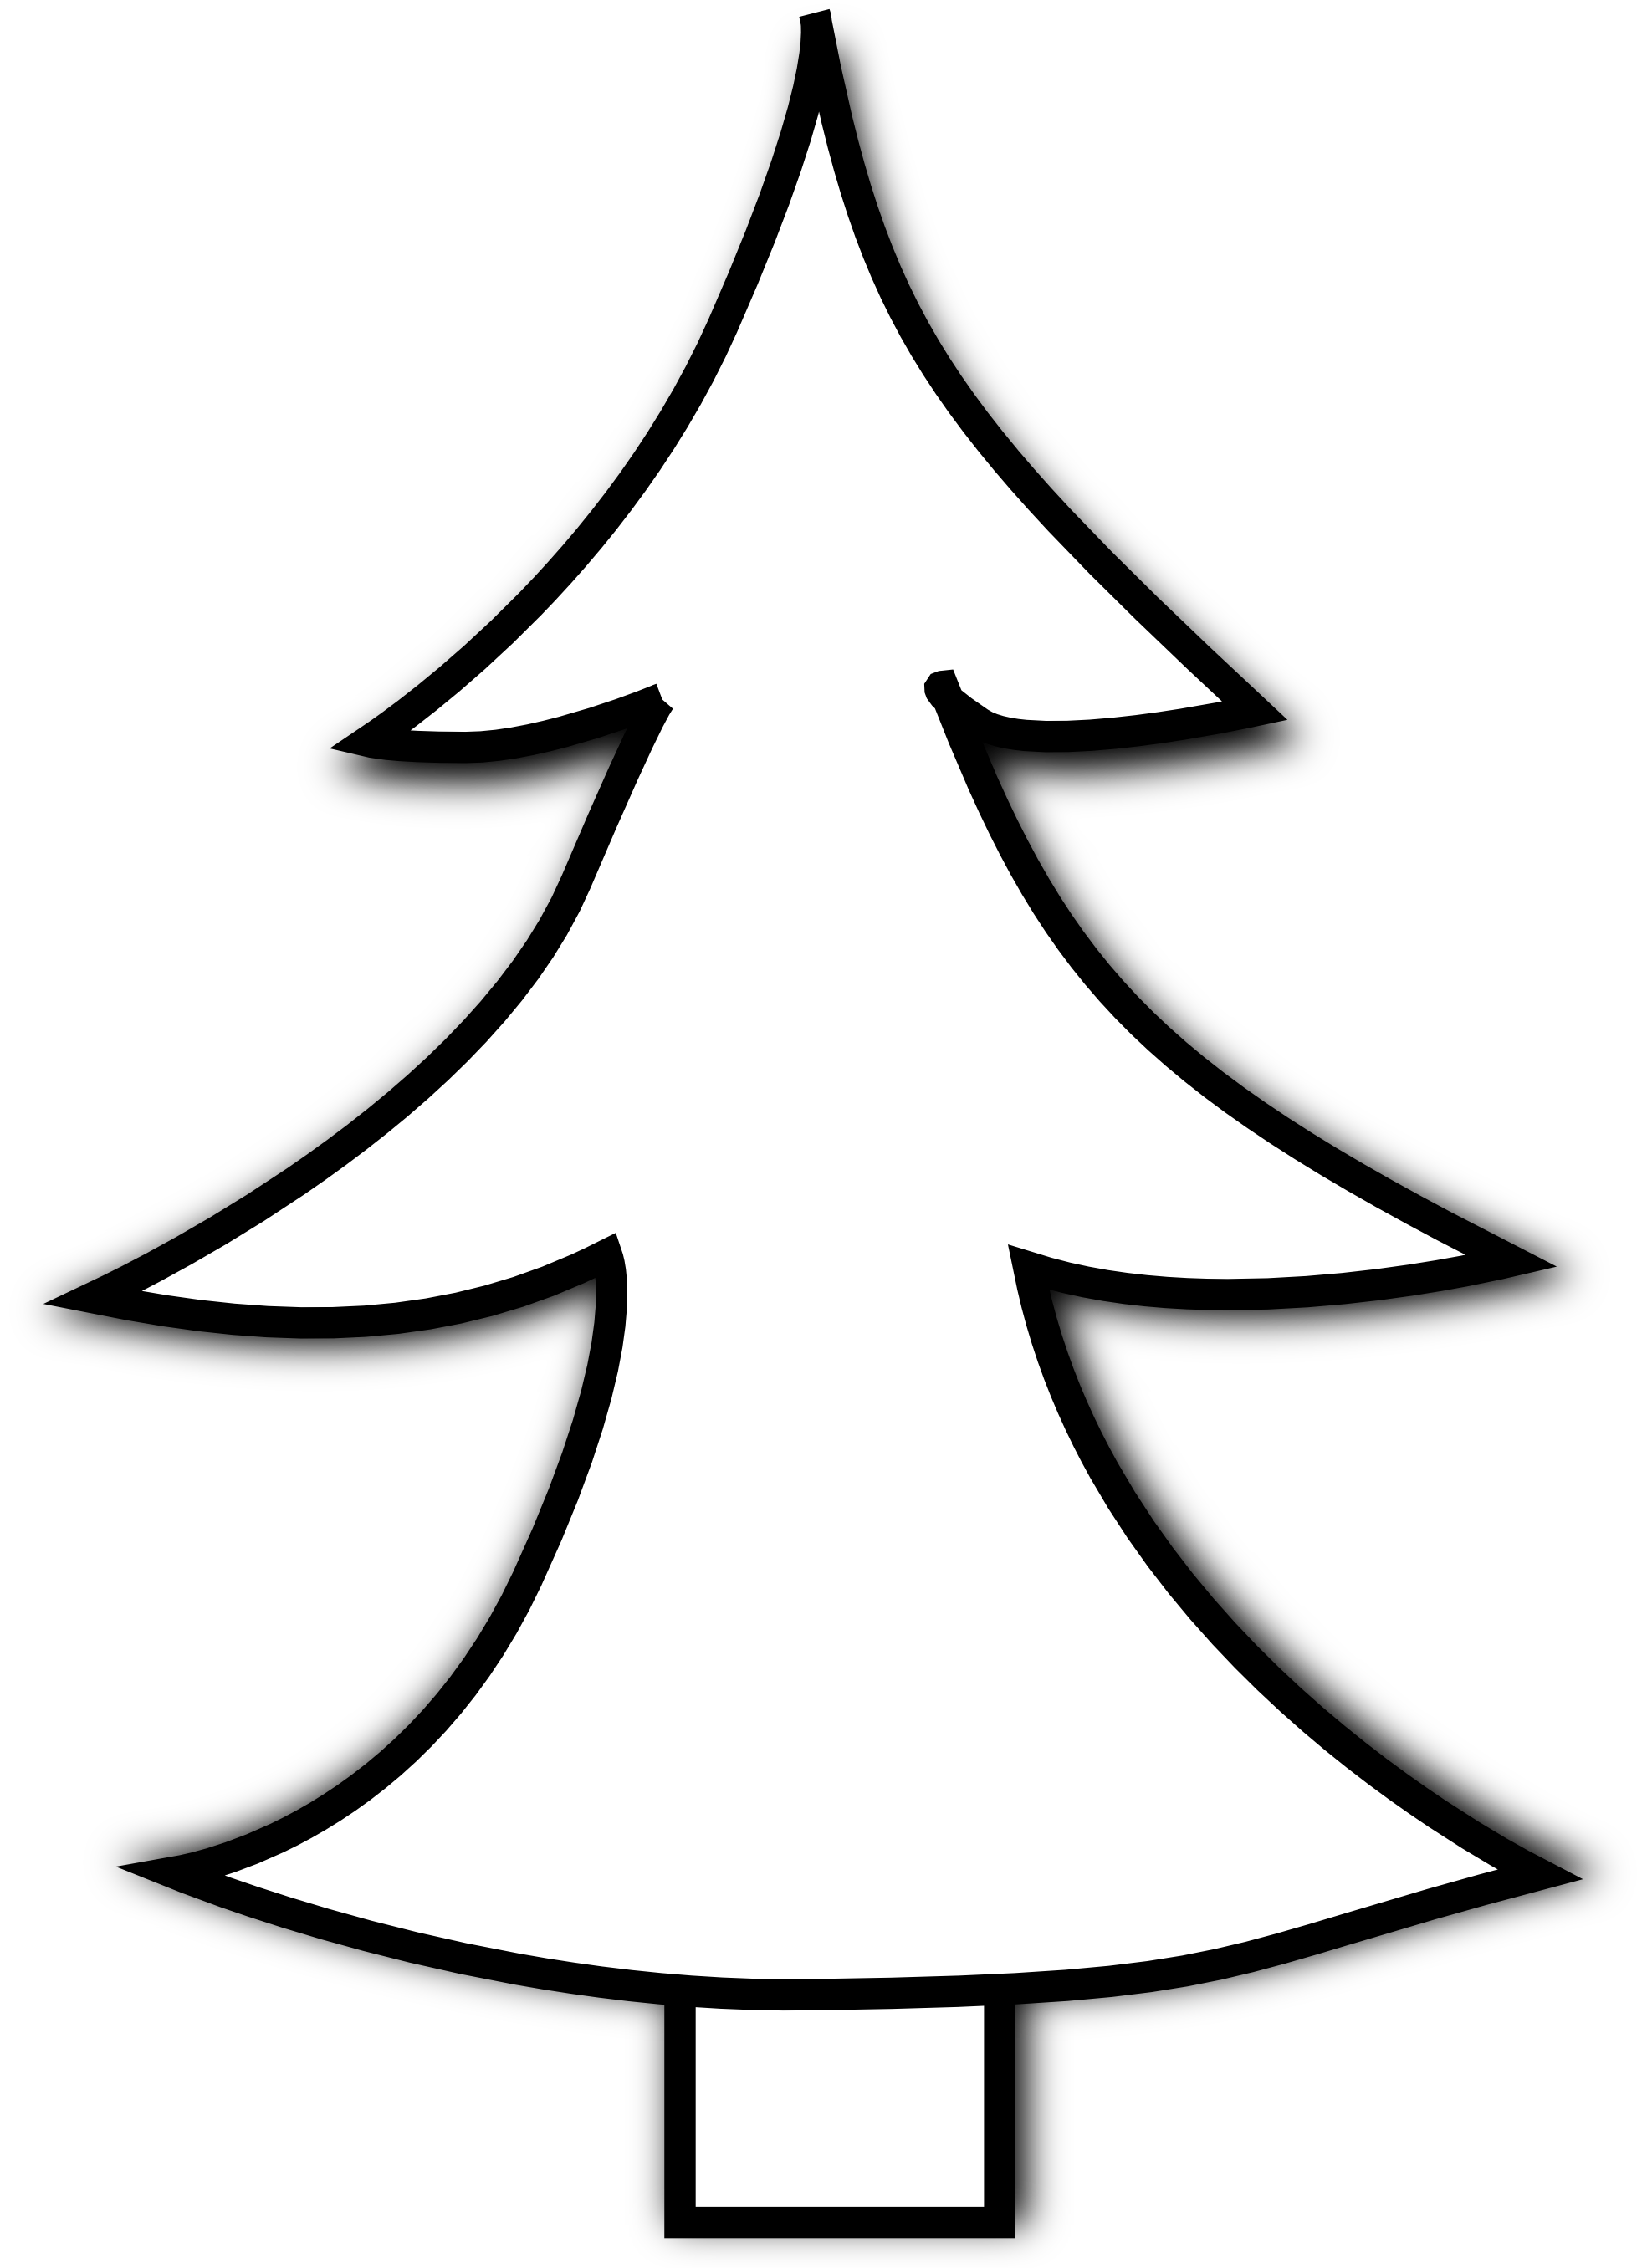 Cute christmas tree clipart graphic free stock Evergreen Trees Silhouette at GetDrawings.com | Free for personal ... graphic free stock